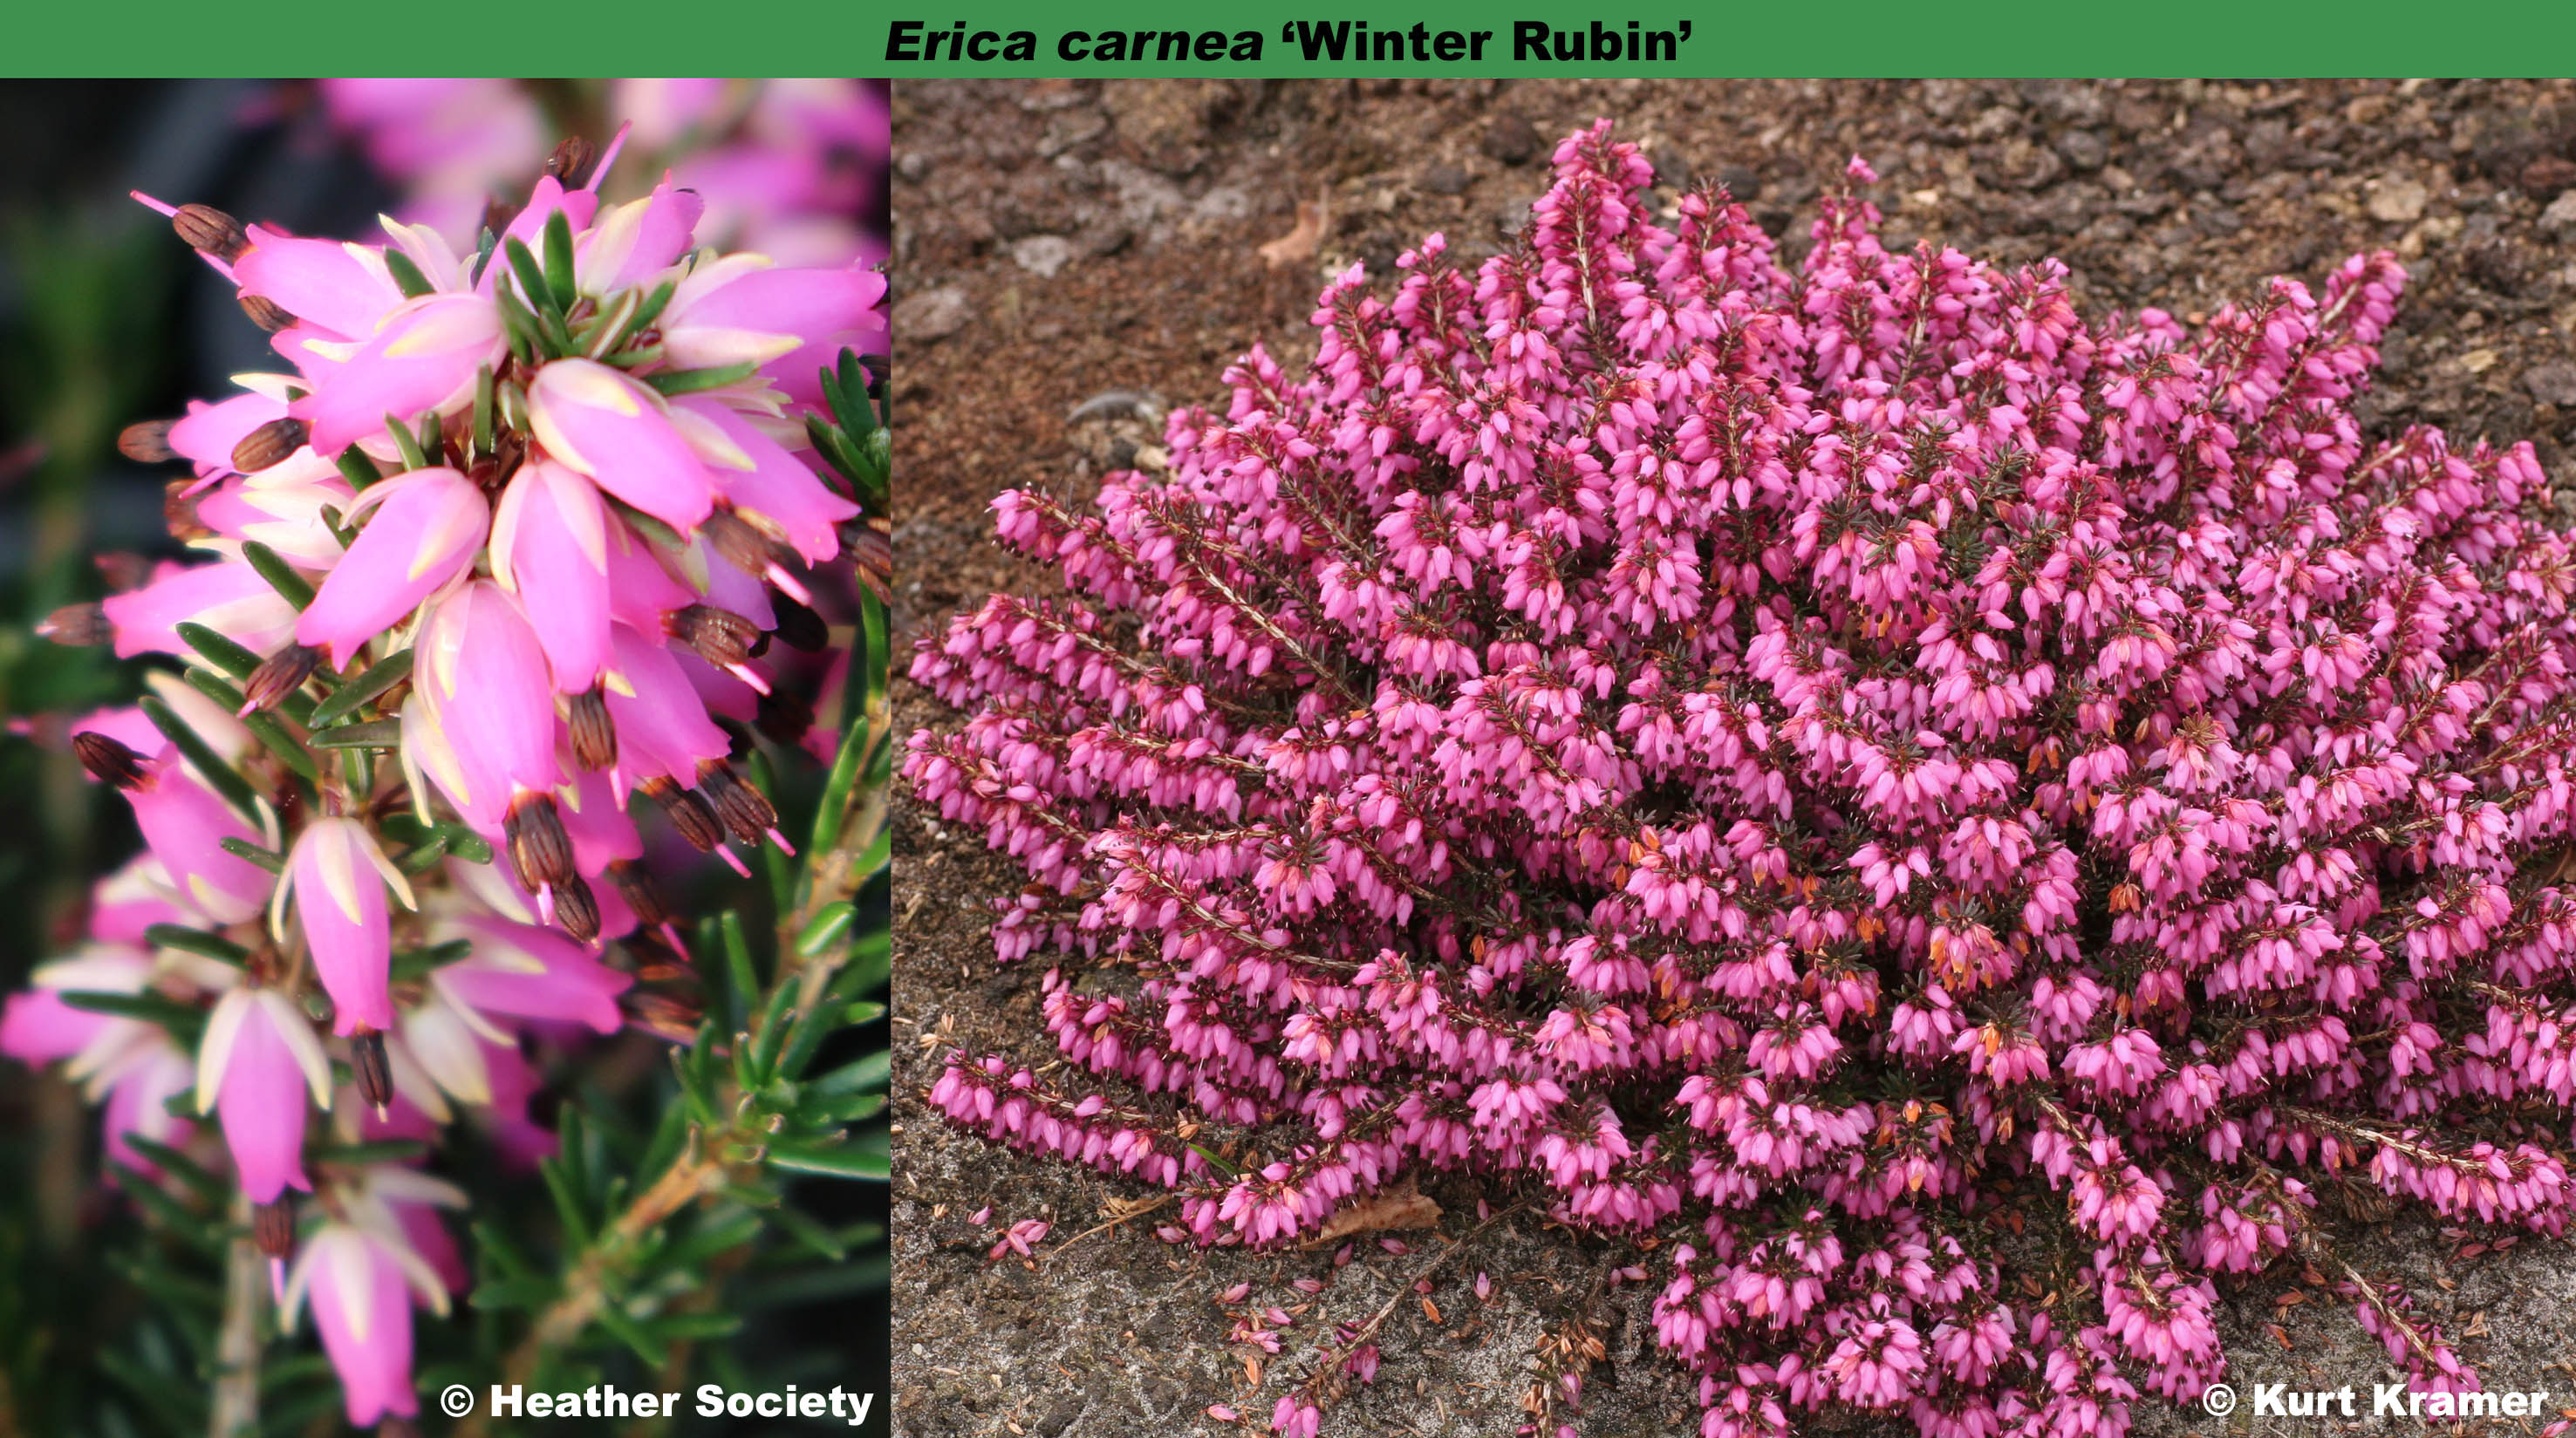 The Heather Society Winter Rubin